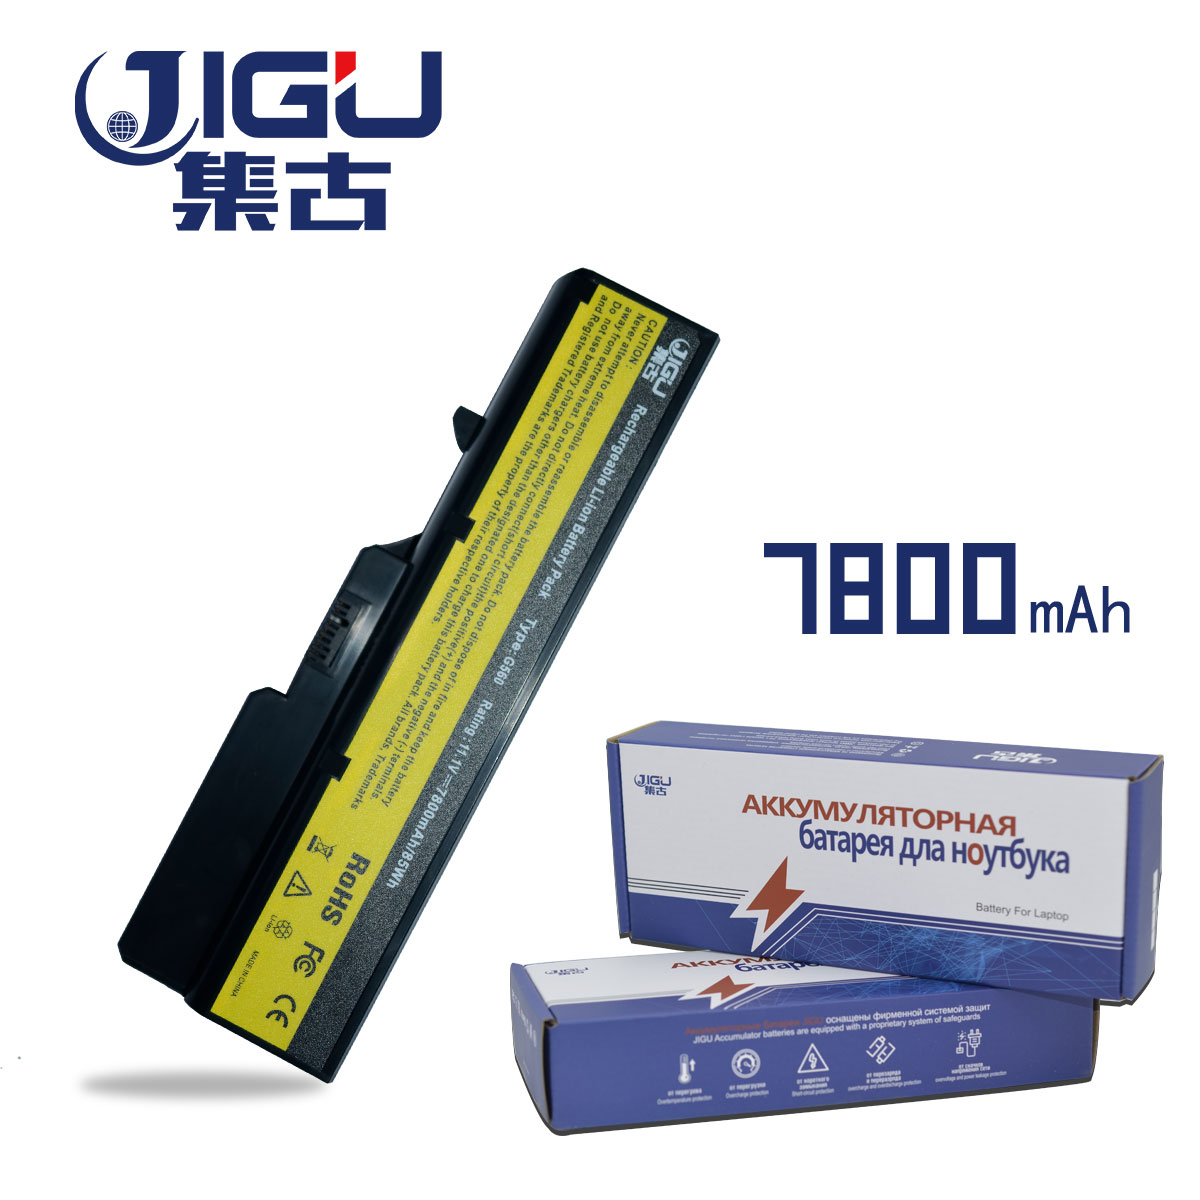 JIGU 9 Cells Laptop Battery For Lenovo E47G E47L IdeaPad G465 G470 G475 G560 G565 G570 G780 G770 V360 V370 V470 V570 Z370 laptop battery for lenovo g560 g565 g570 g575 g770 g470 v360 v370 v470 v570 z370 z460 z465 z470 z475 z560 z565 z570